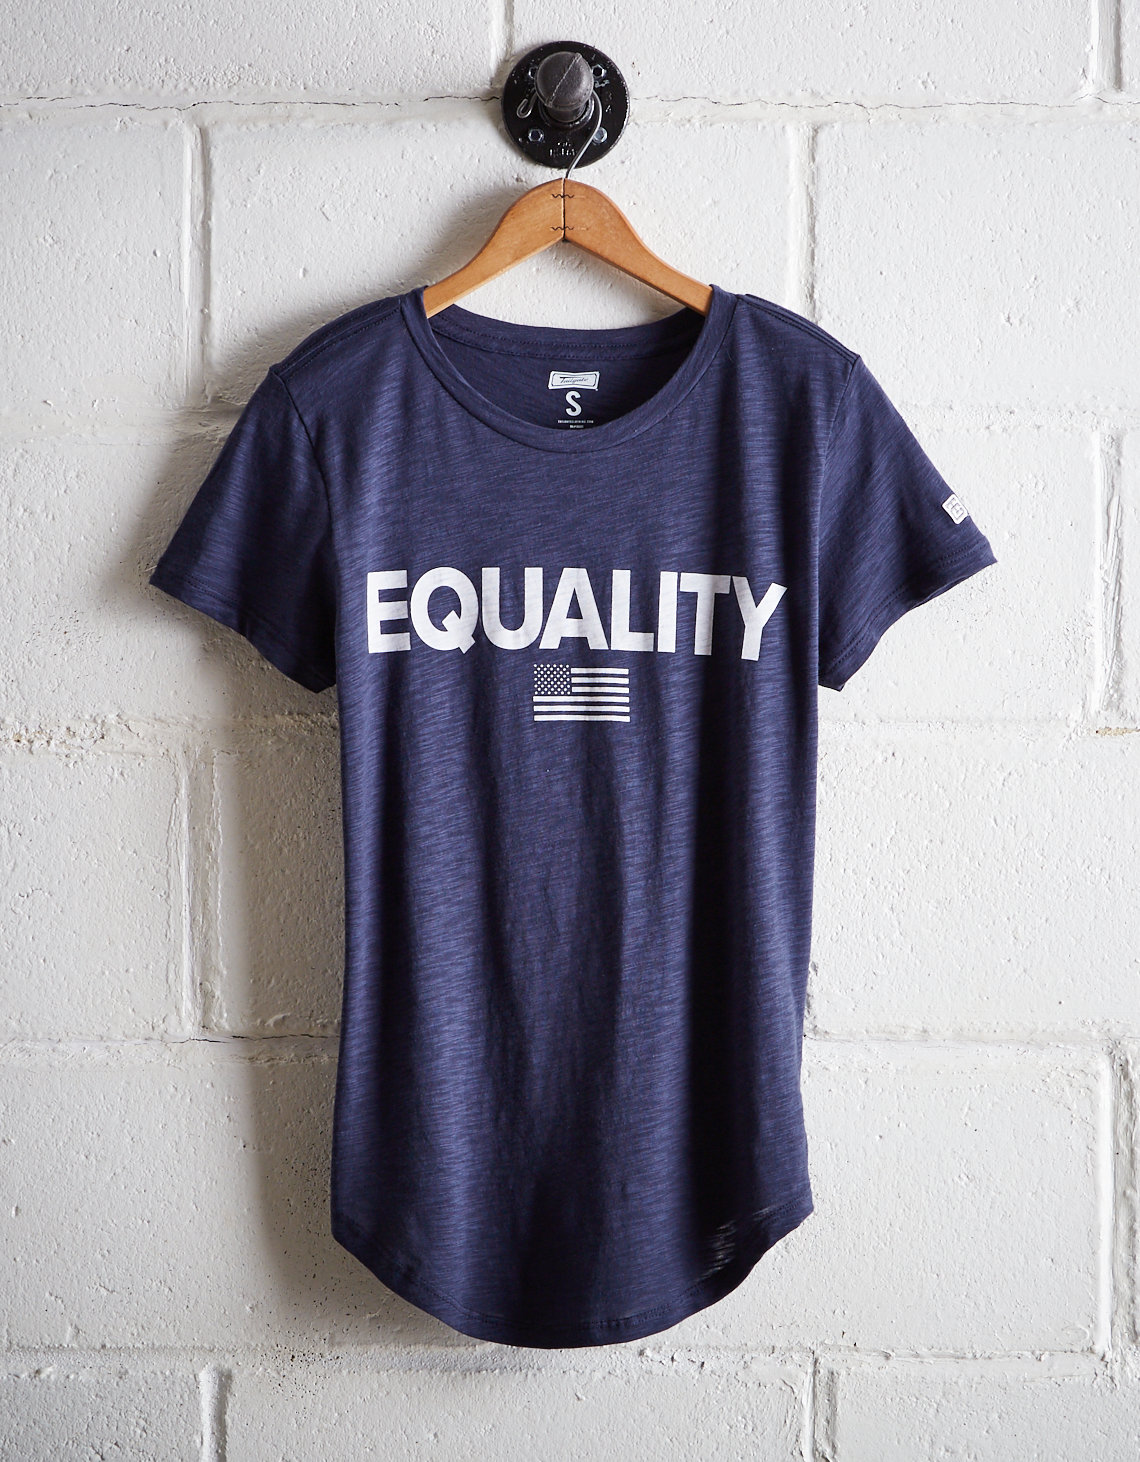 0c301c854d355 Tailgate Women s Equality T-Shirt. Placeholder image. Product Image